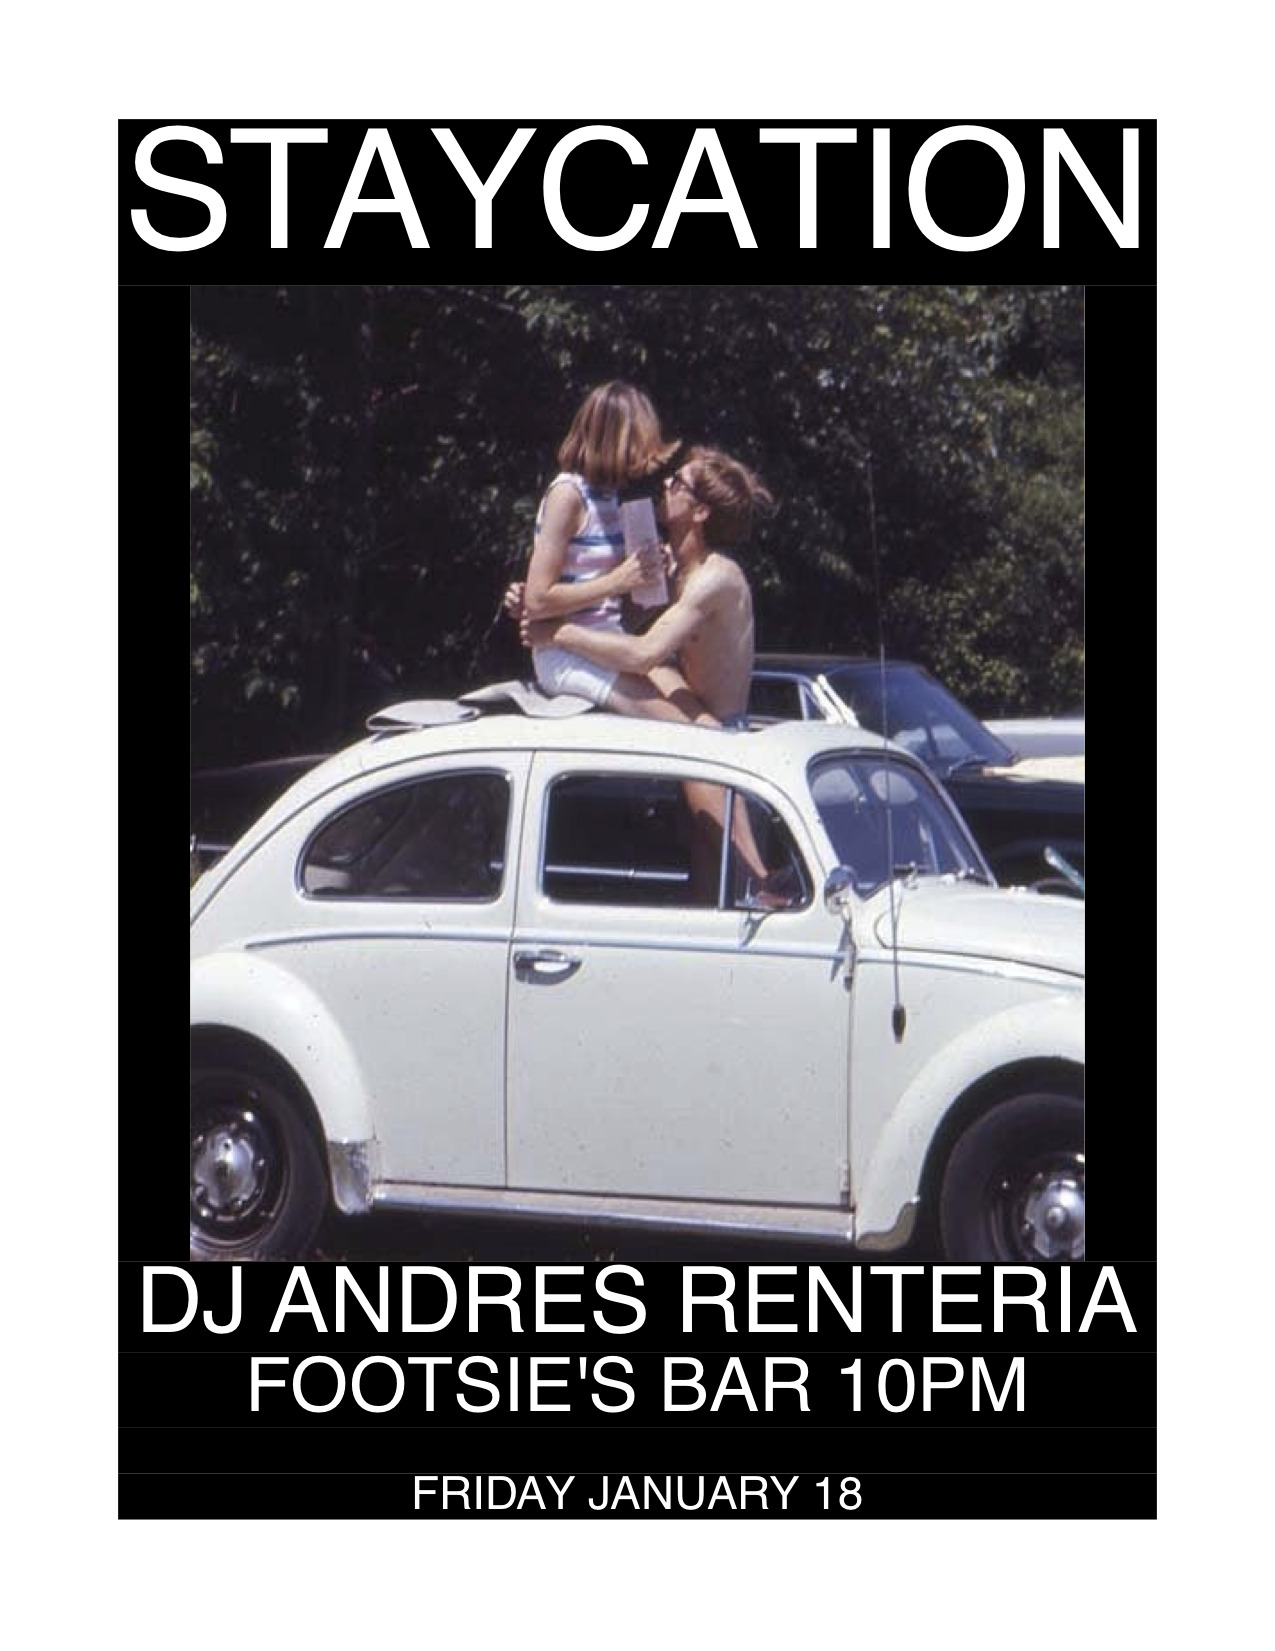 I'll be spinning records from 10pm-2am at Footsie's Bar on Friday, January 18.  It'll be like kissing your favorite girl or your favorite boy in that '64 ragtop you've always wanted.   soul, funky 45s, international shakers, r&b, and more……….It's the most fun!!!!!